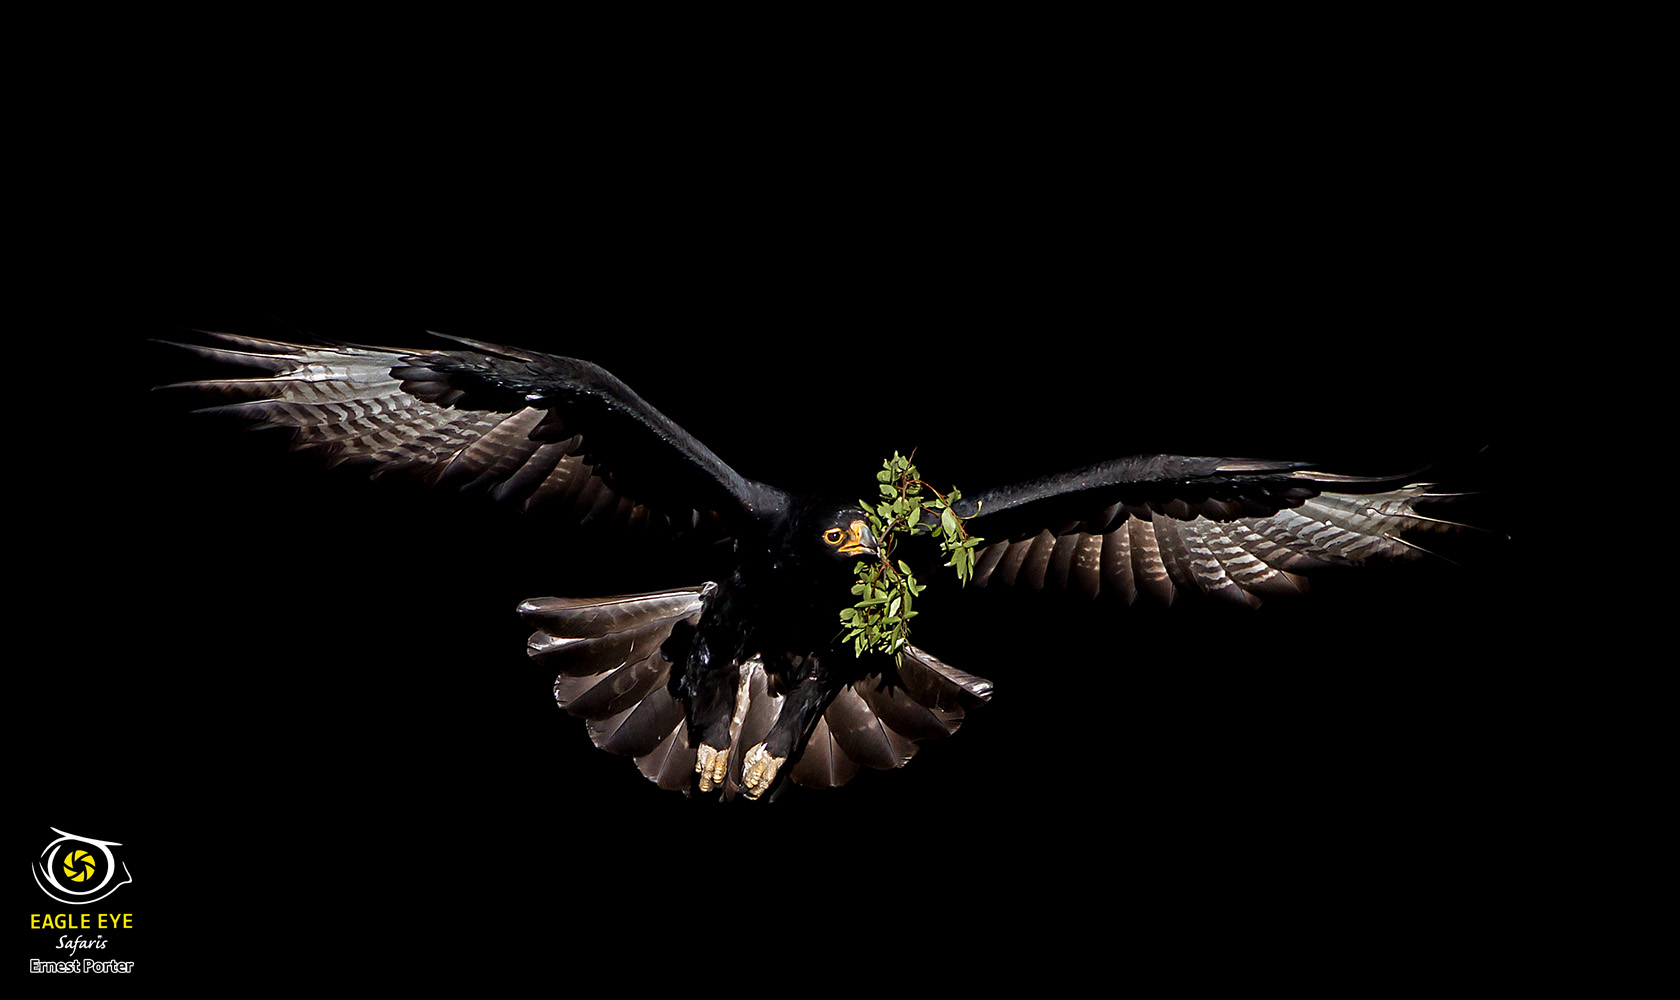 Emoyeni on her way to the nest (Verreaux's Eagle)